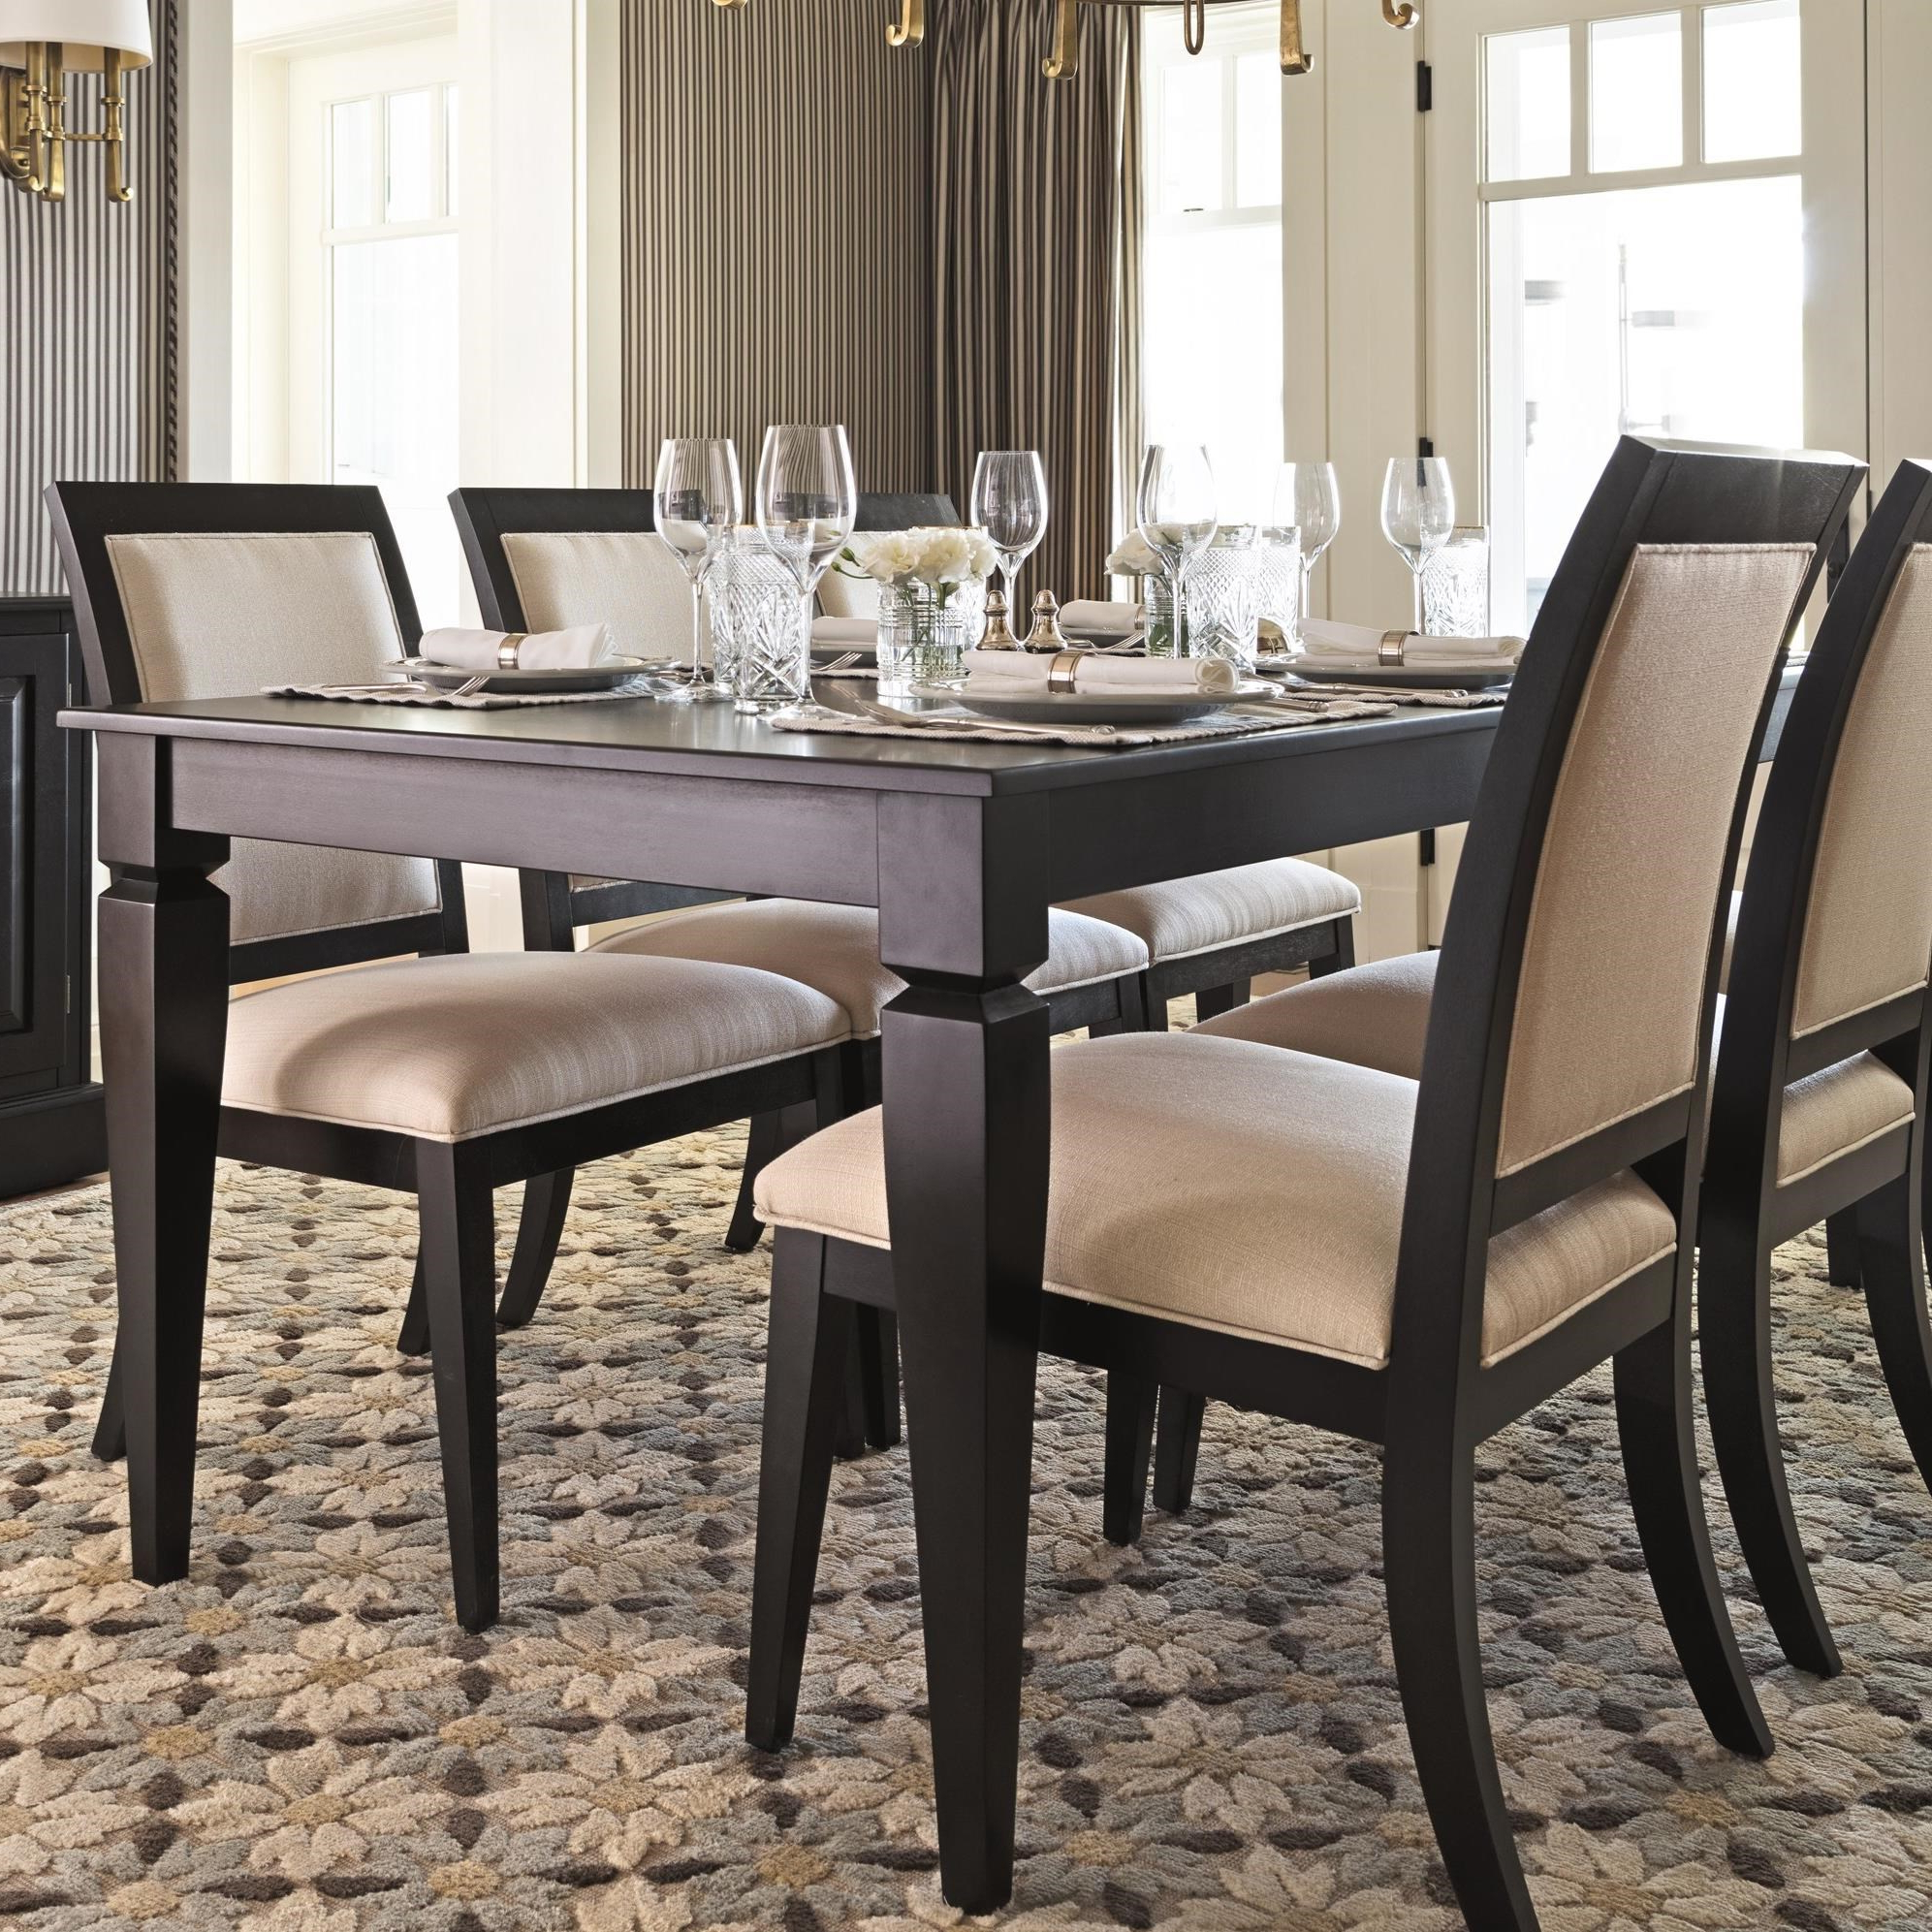 Popular Transitional 4 Seating Drop Leaf Casual Dining Tables Inside Canadel Custom Dining Customizable Rectangular Dining Table (View 13 of 30)